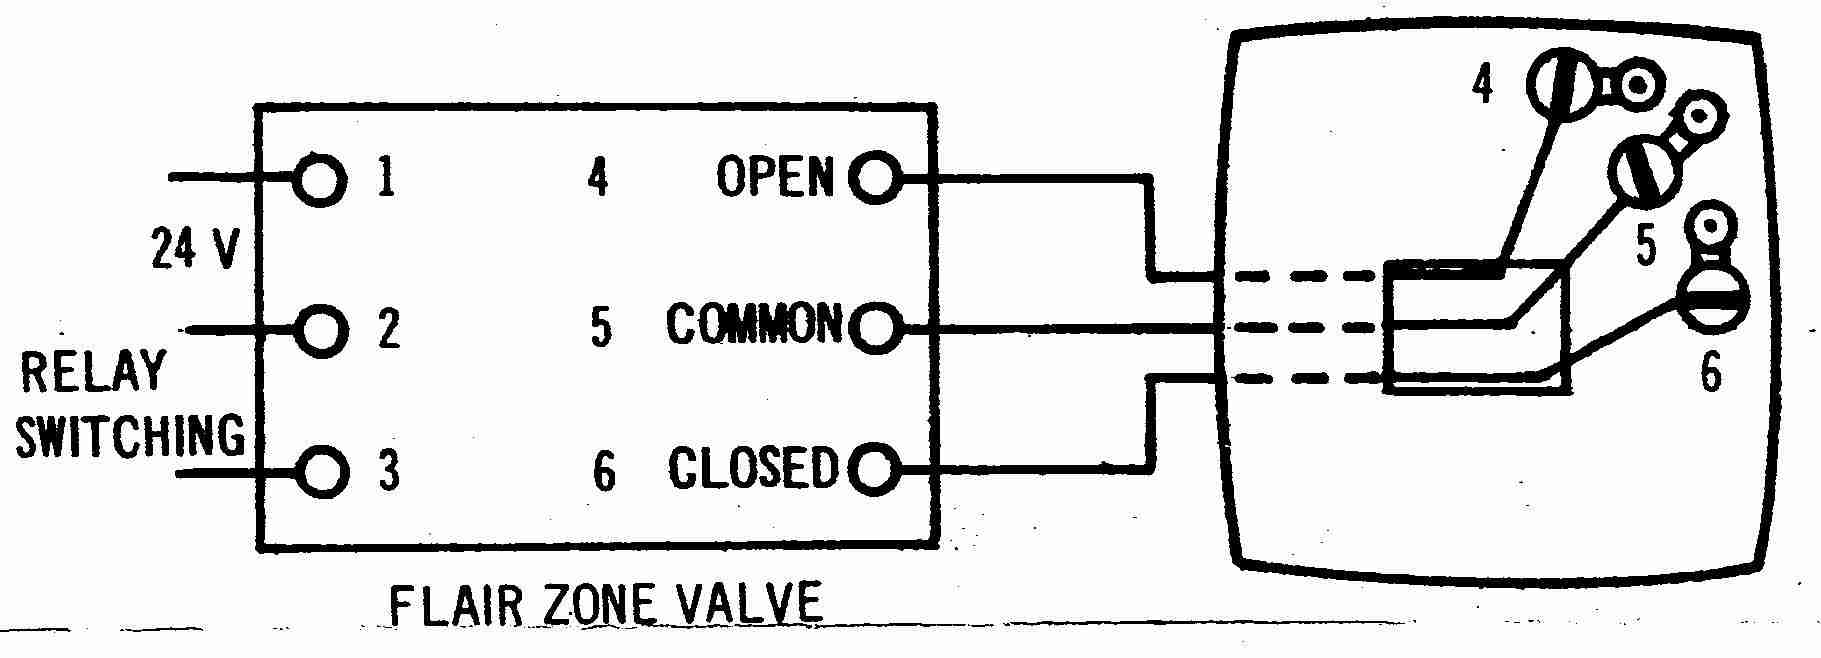 Flair3w_001_DJFc2 zone valve wiring installation & instructions guide to heating honeywell v8043 zone valve wiring diagram at soozxer.org